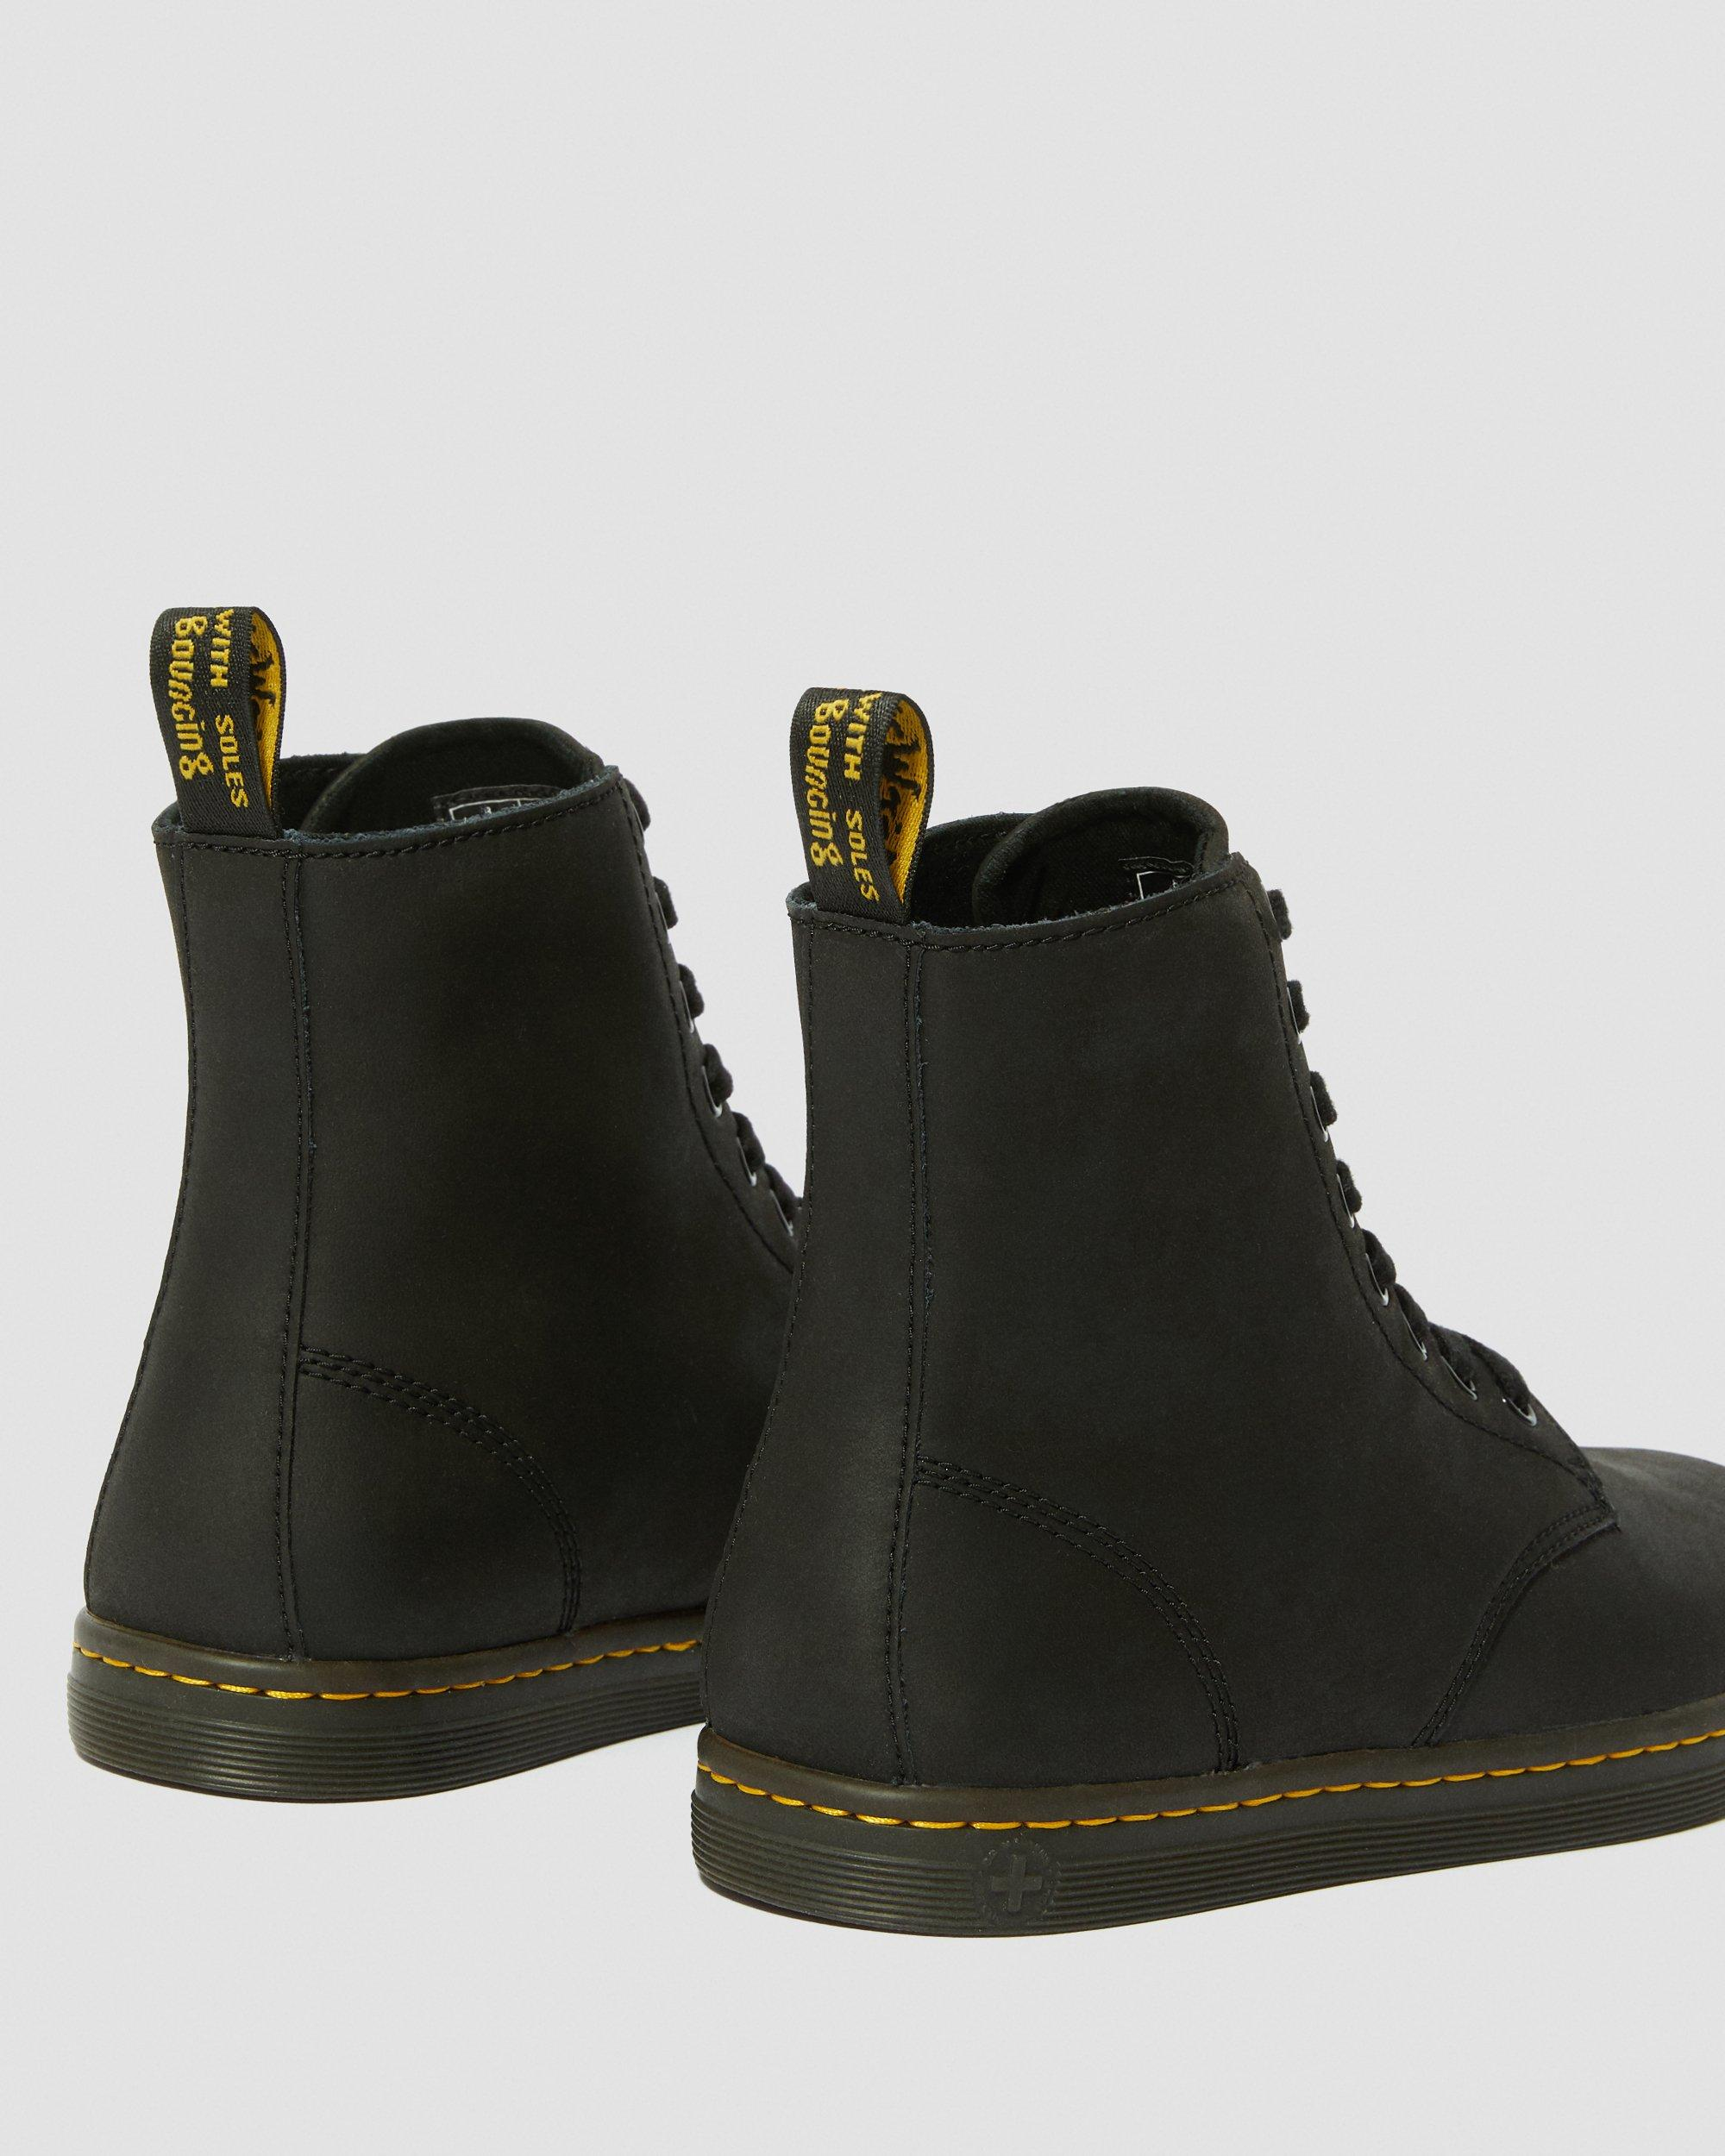 TOBIAS MEN'S LEATHER CASUAL BOOTS | Dr